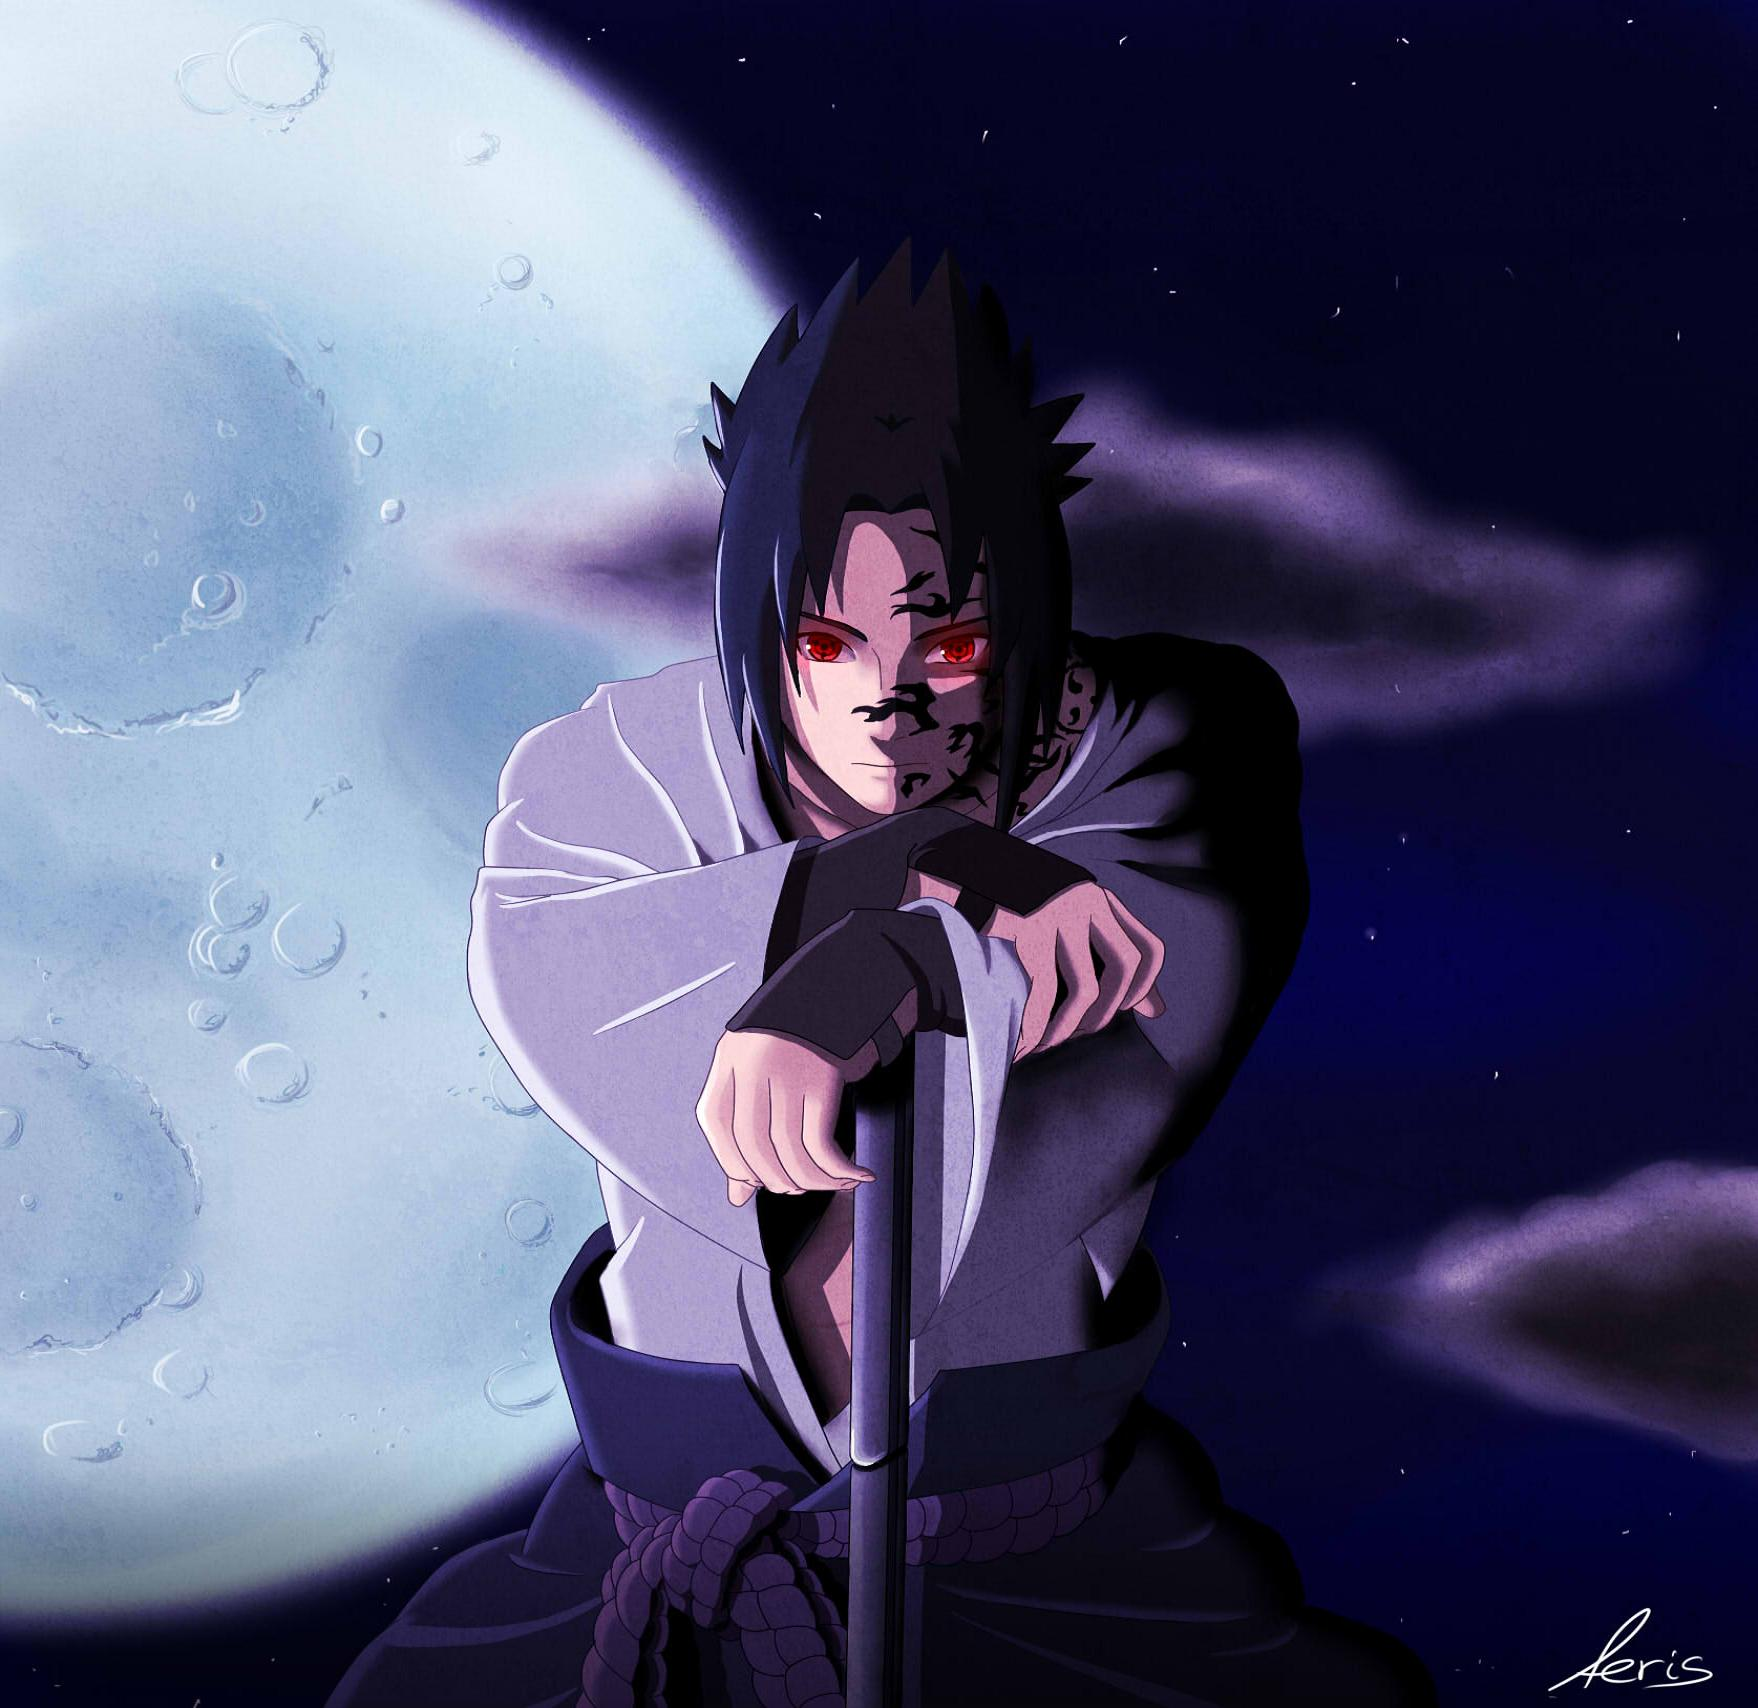 Naruto Shippuuden images NARUTO SHIPPUDEN HD wallpaper and background